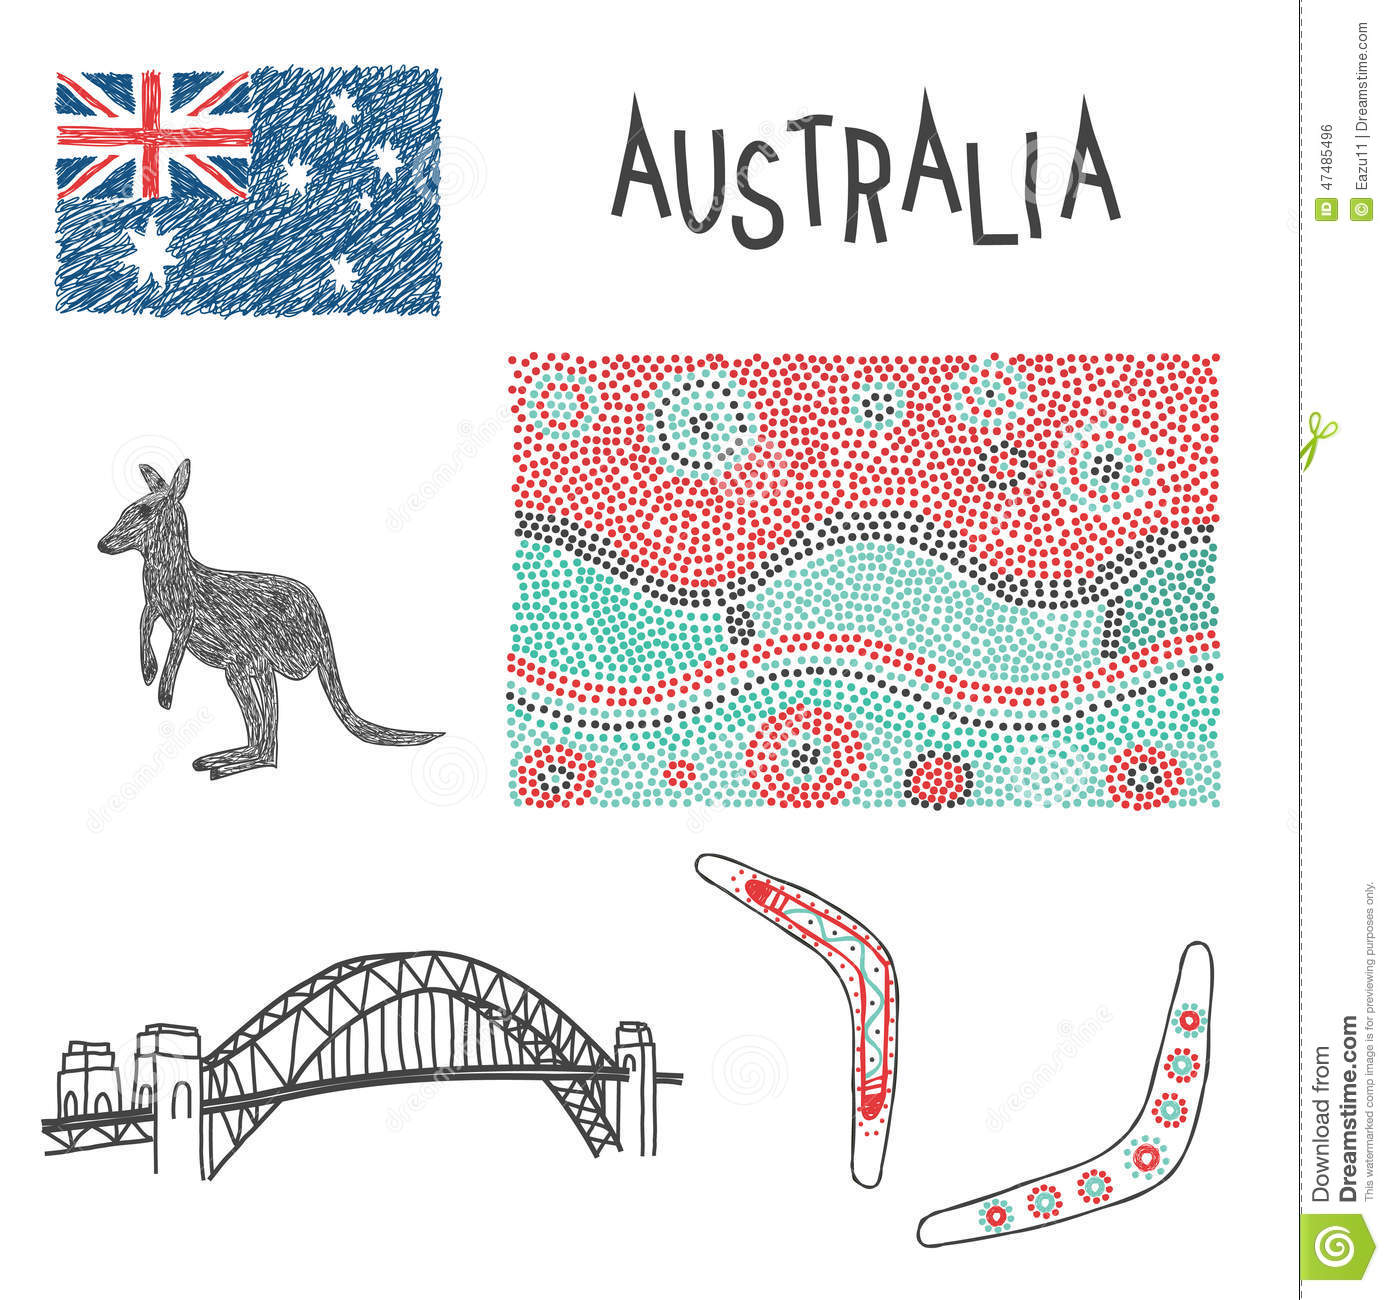 Aboriginal Pictures, Illustrations to Download